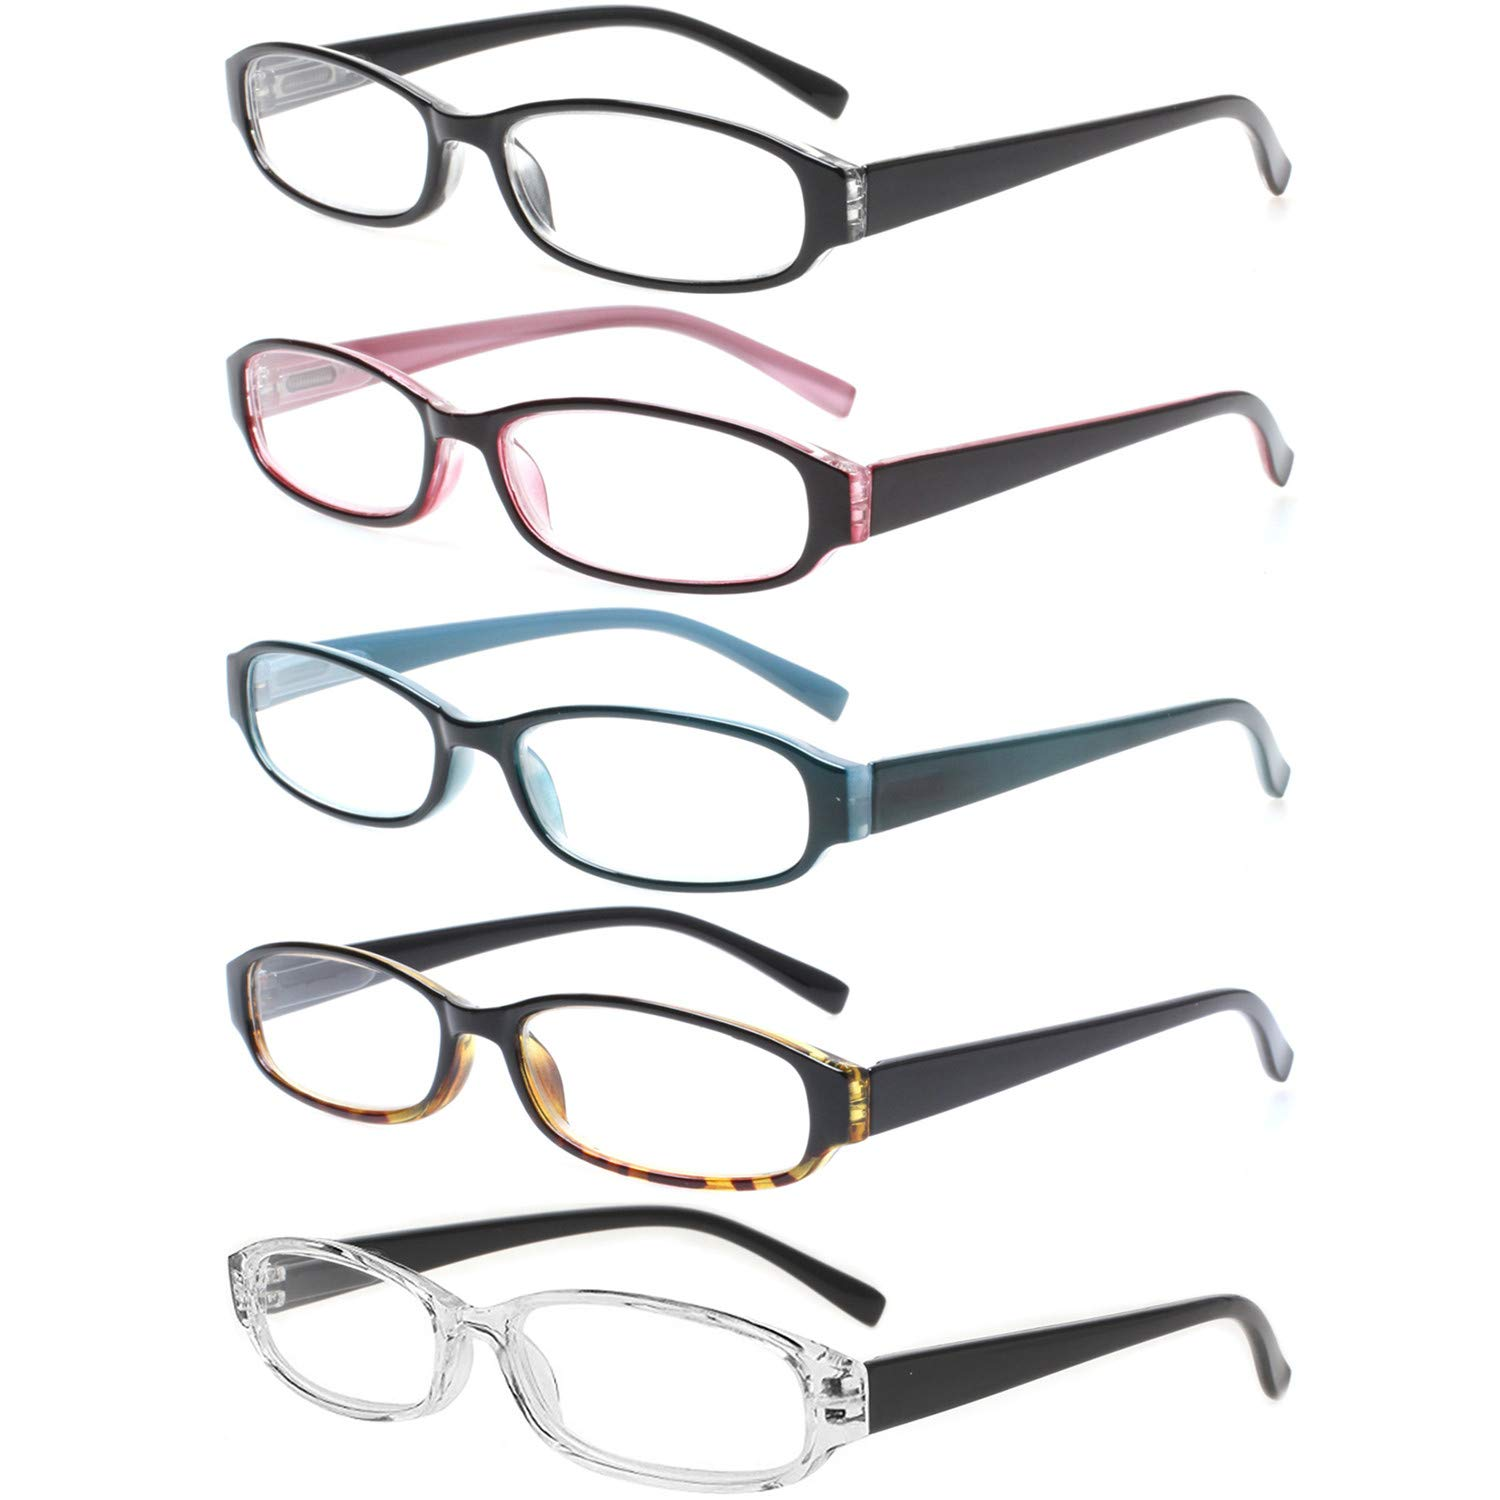 Reading Glasses 5 Pairs Spring Hinge Comfort Fashion Quality Readers for Men and Women (5 Pack Mix Color, 2.50) by Norperwis